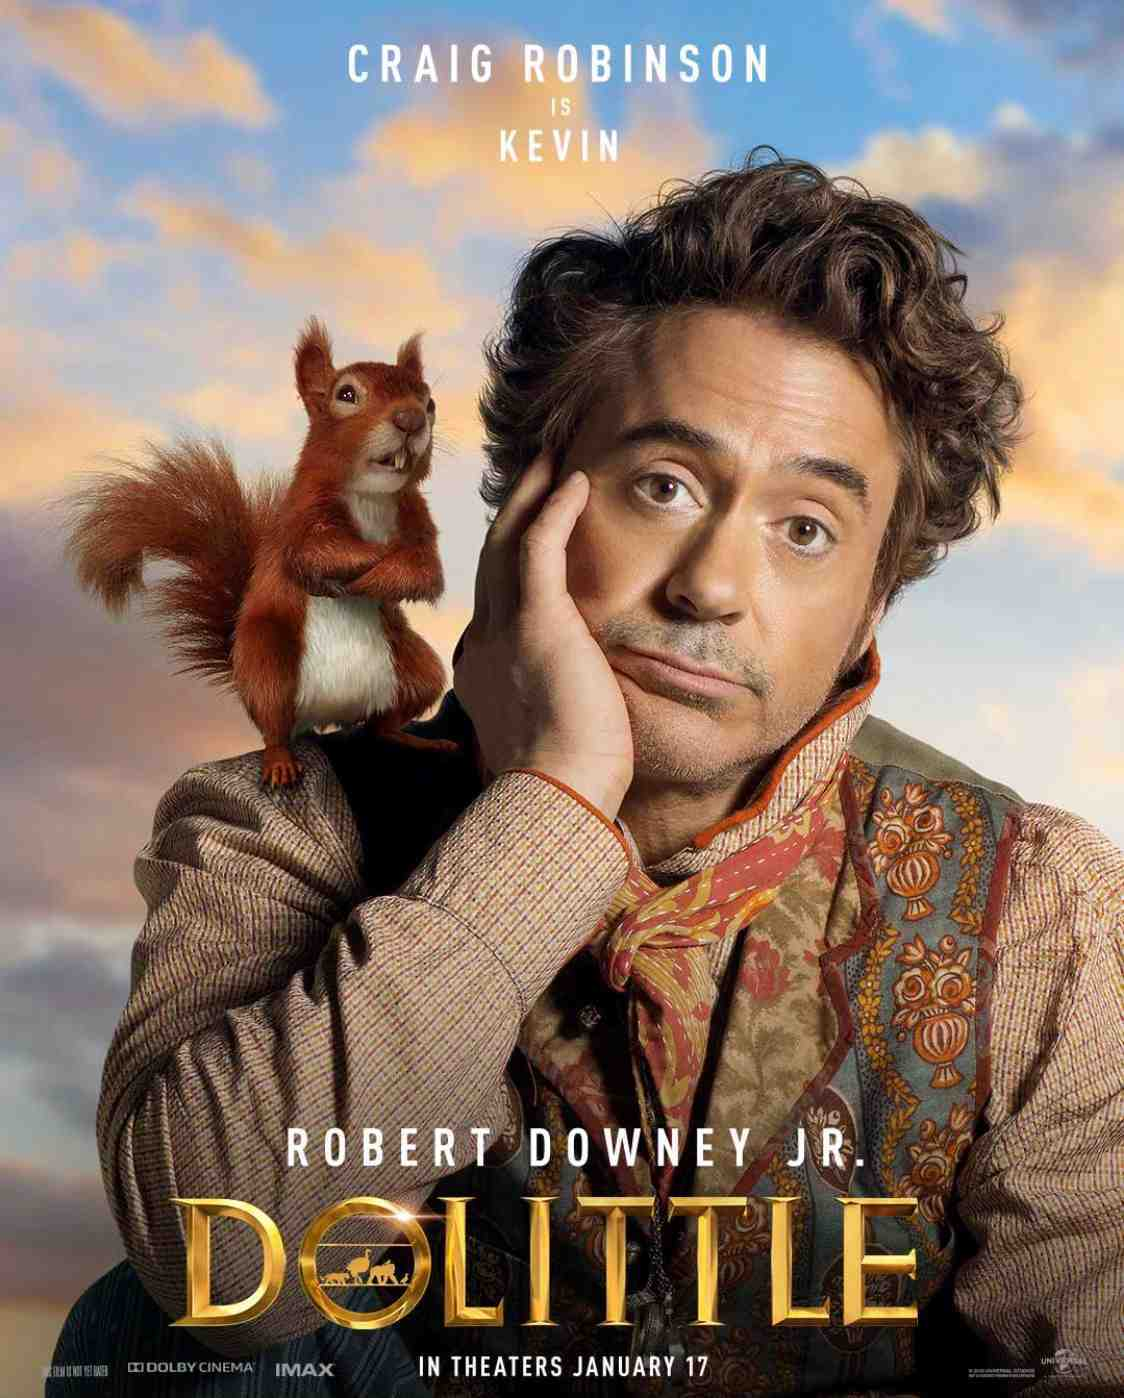 Robert Downey Jr Reveals New Dolittle Character Posters